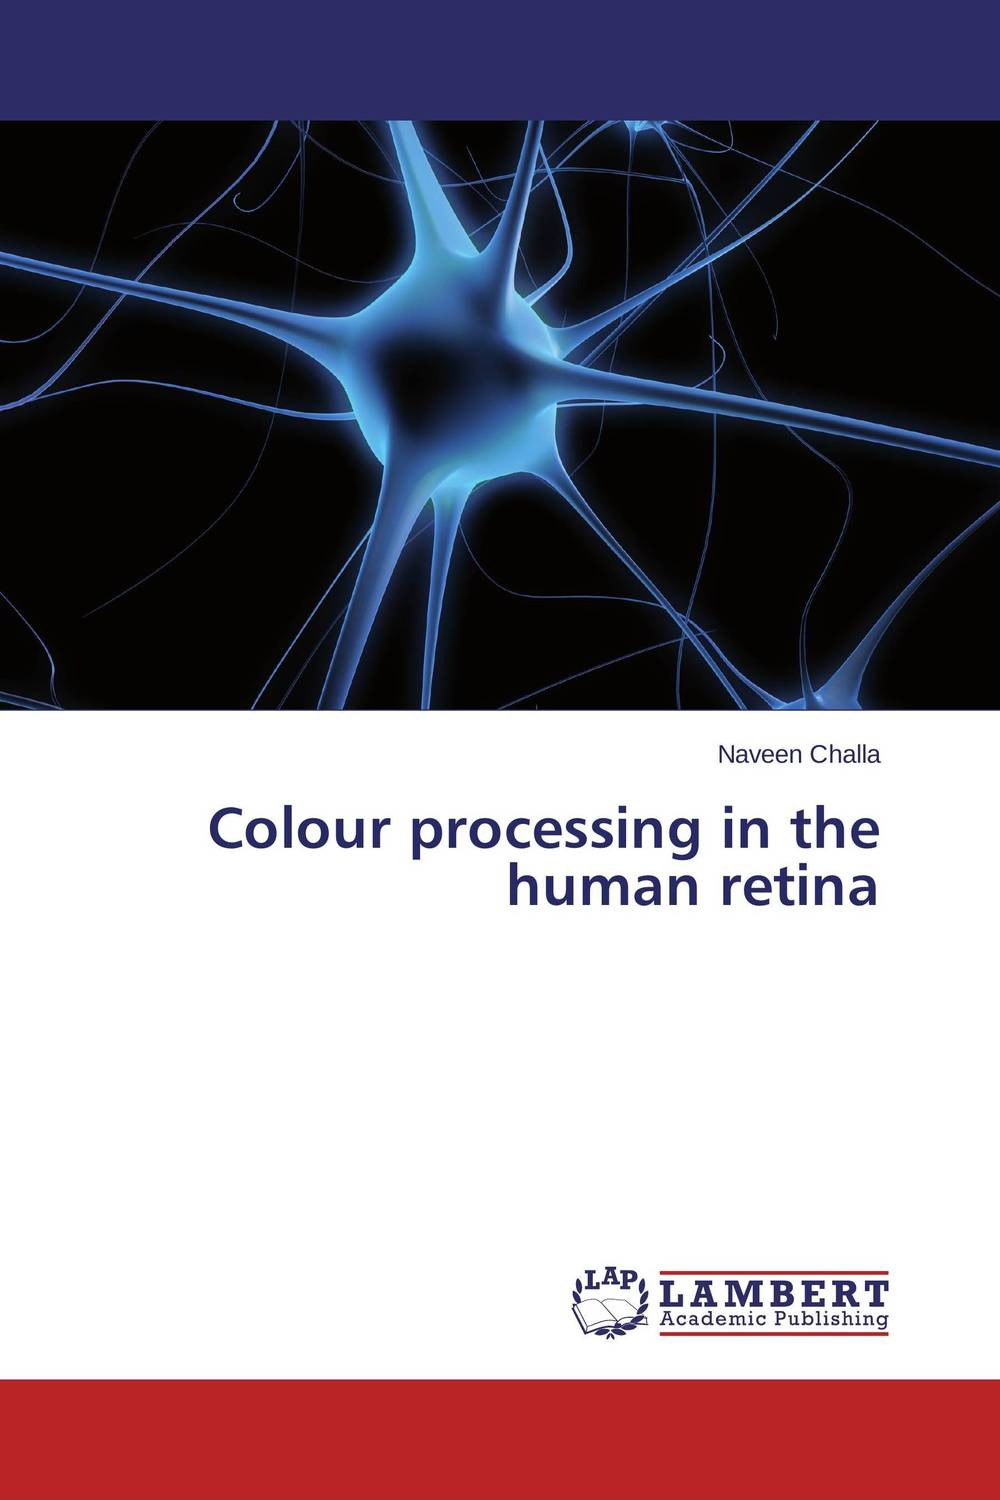 Colour processing in the human retina temporal processing of news